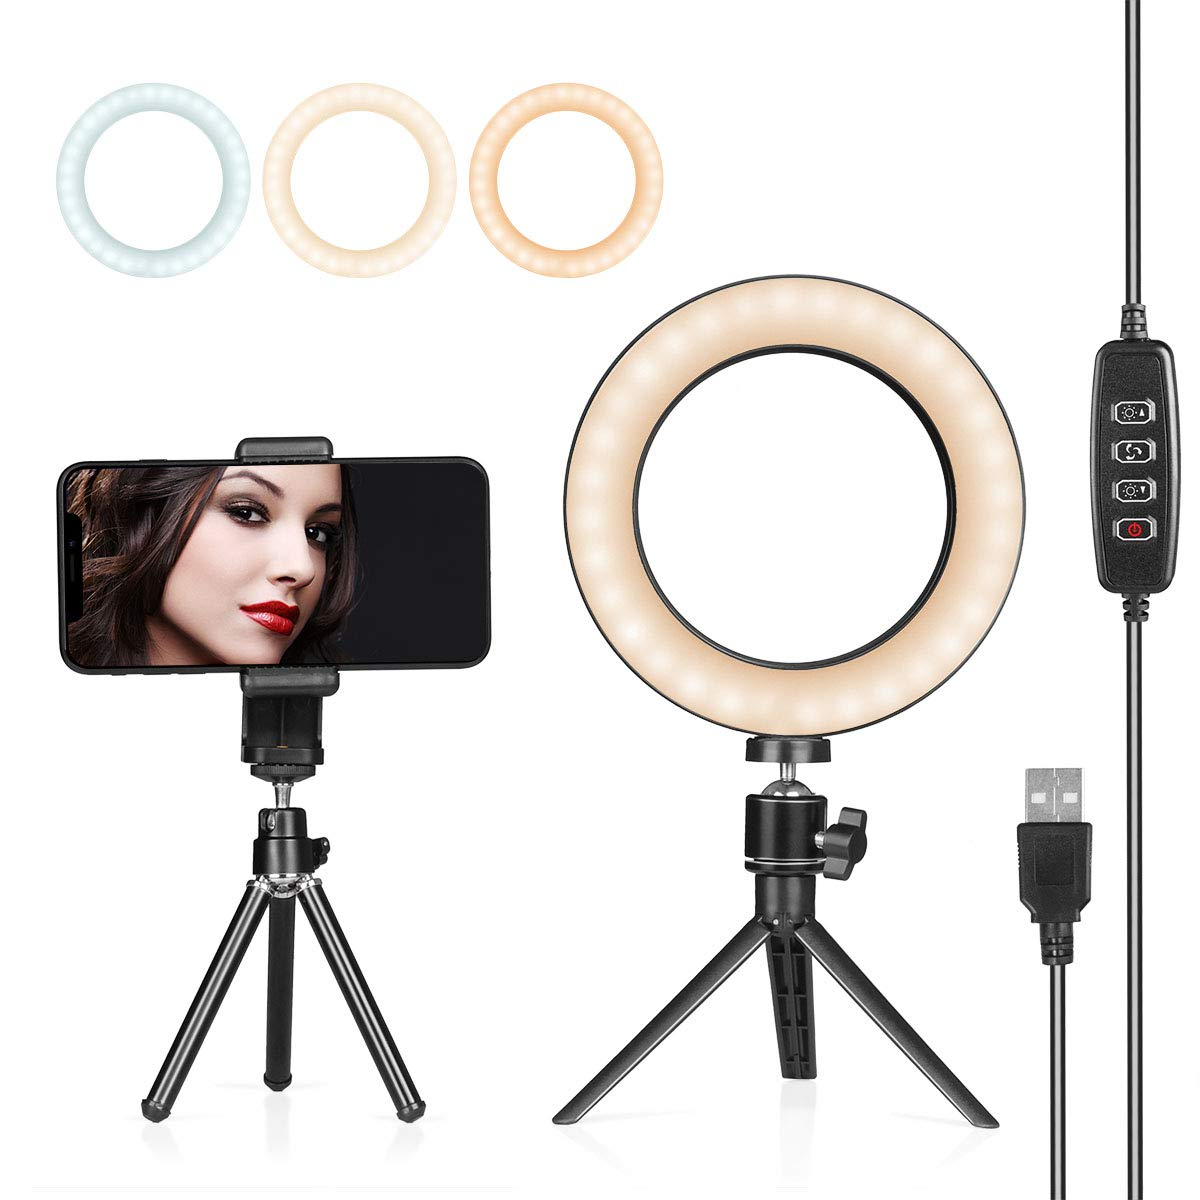 AIXPI - LED Ring Light with Tripod Stand, Desk Makeup Light with Cell Phone Holder 6 inch Dimmable 3 Light Modes & 10 Brightness for Streaming, YouTube Video Shooting, Photography Lighting